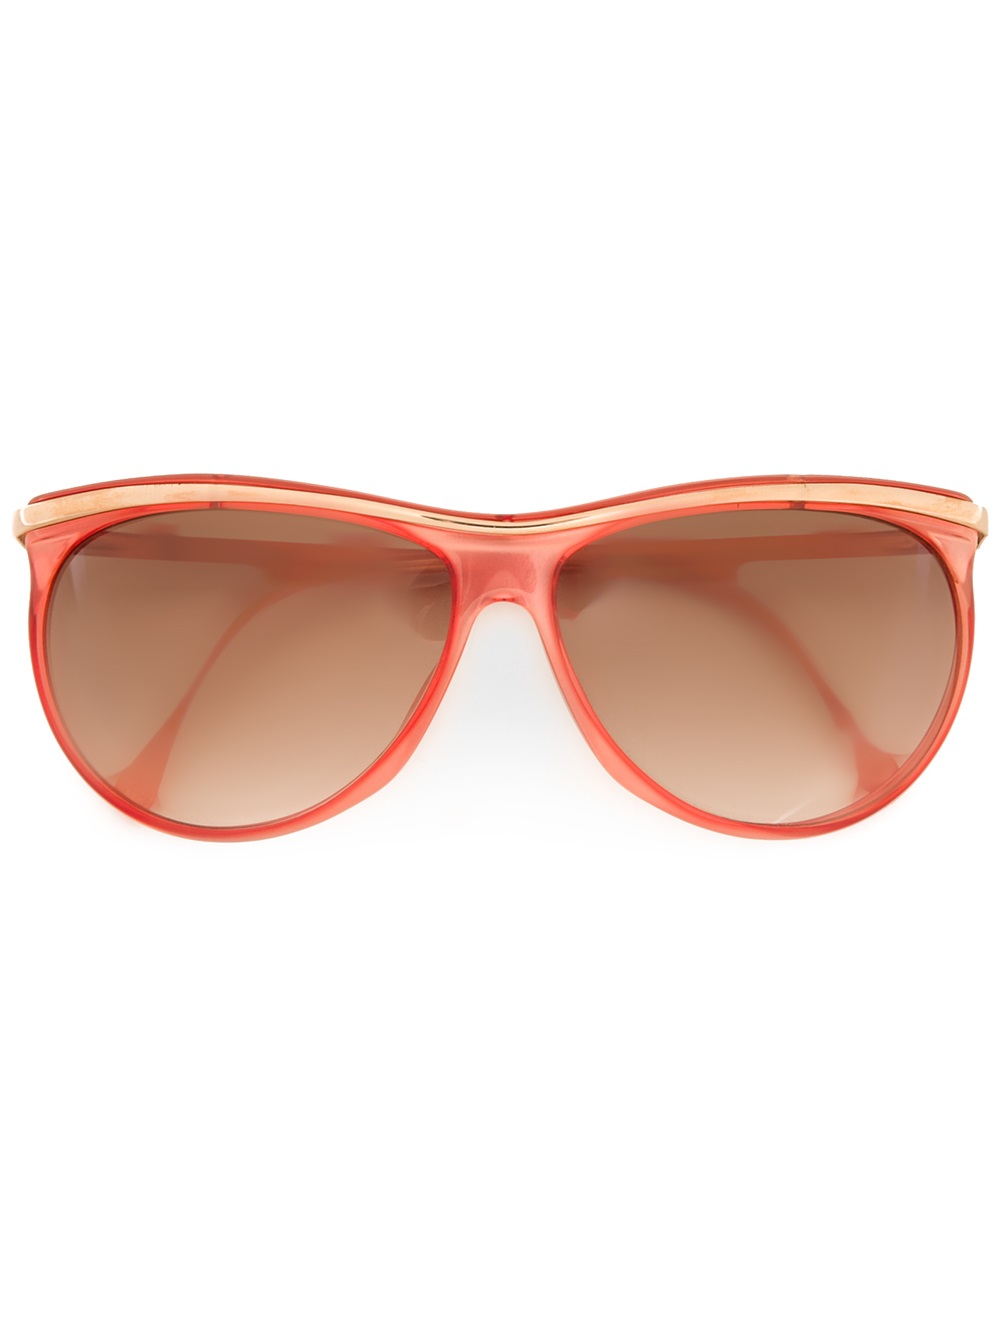 Versace Butterfly Frame Sunglasses in Red